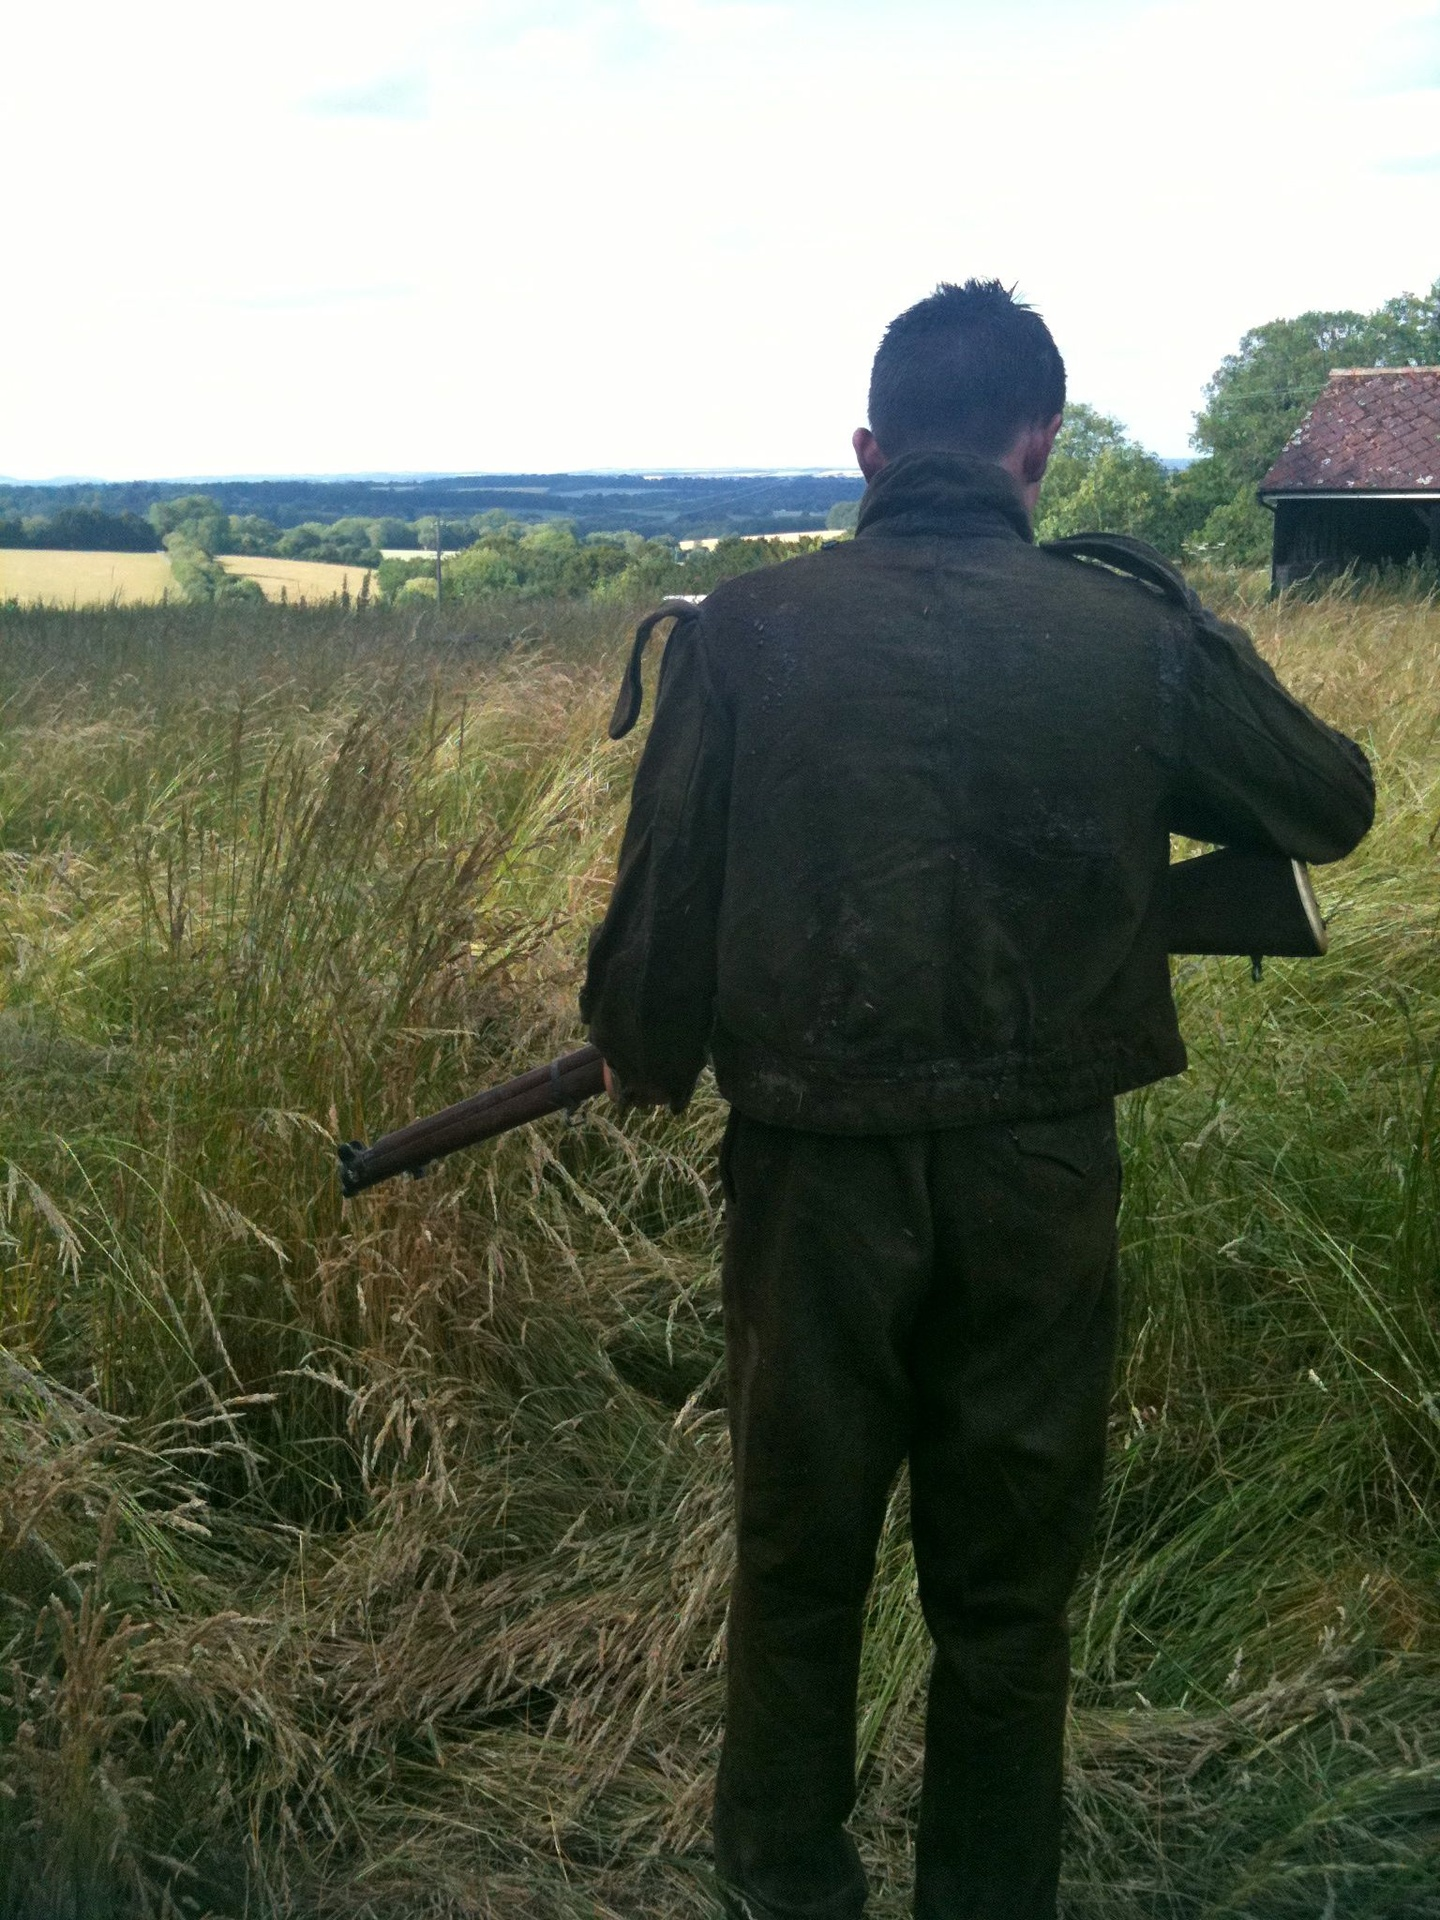 WW2 Albert with rifle